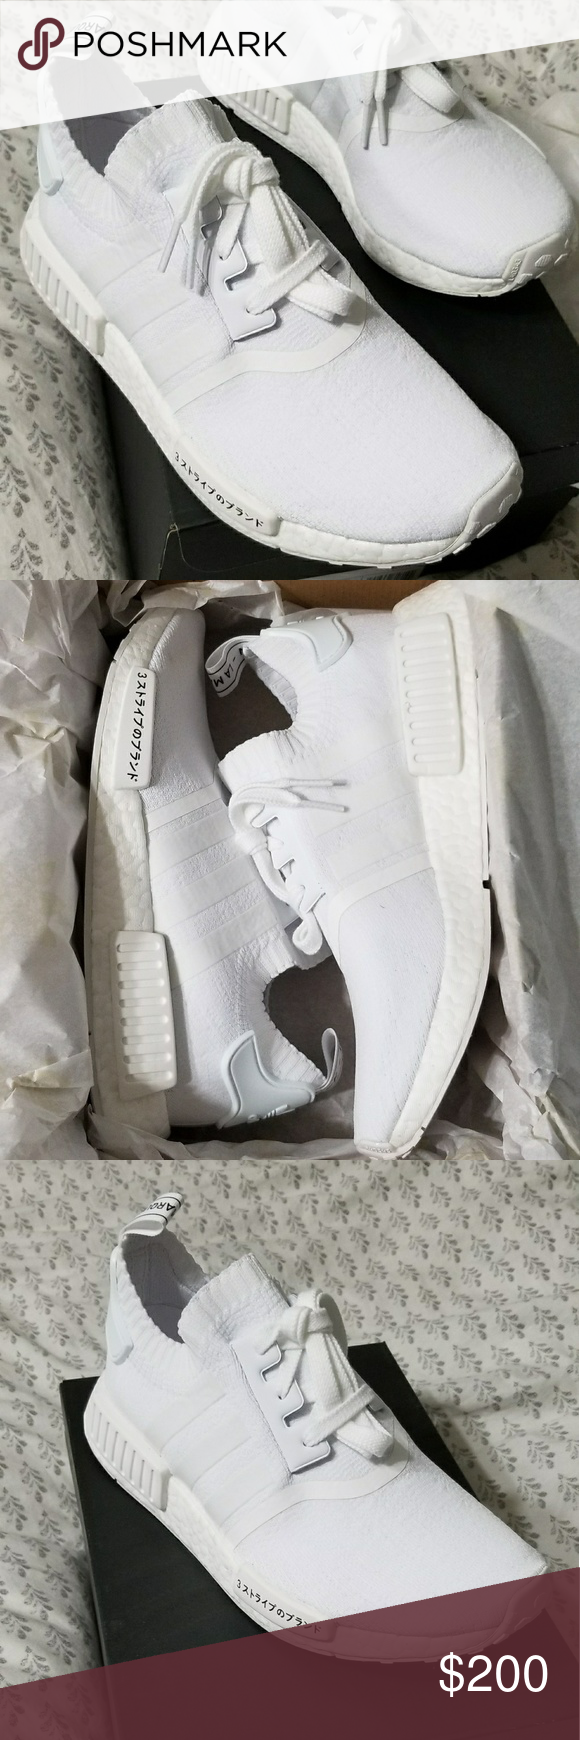 adidas nmd r1 giappone pk in scatola adidas nmd r1 giappone triplo bianco